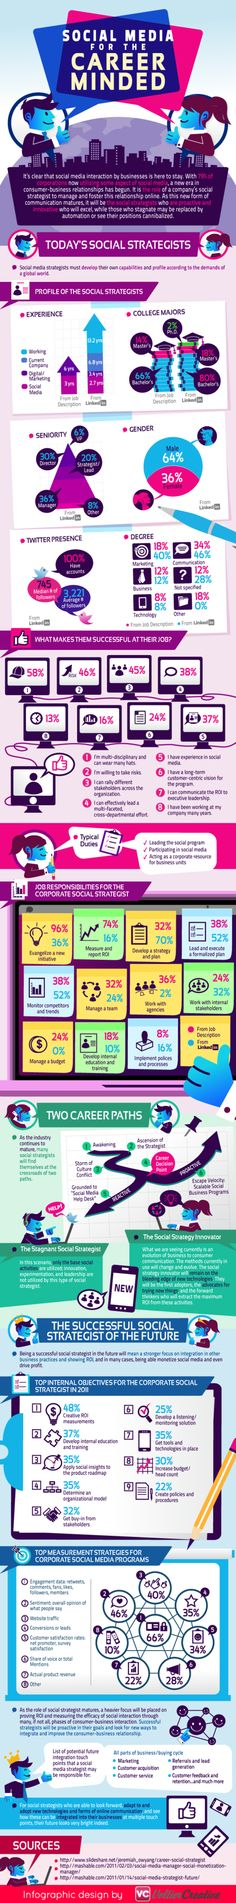 How Do You Make The Grade As A Social Media Strategist? #infographic